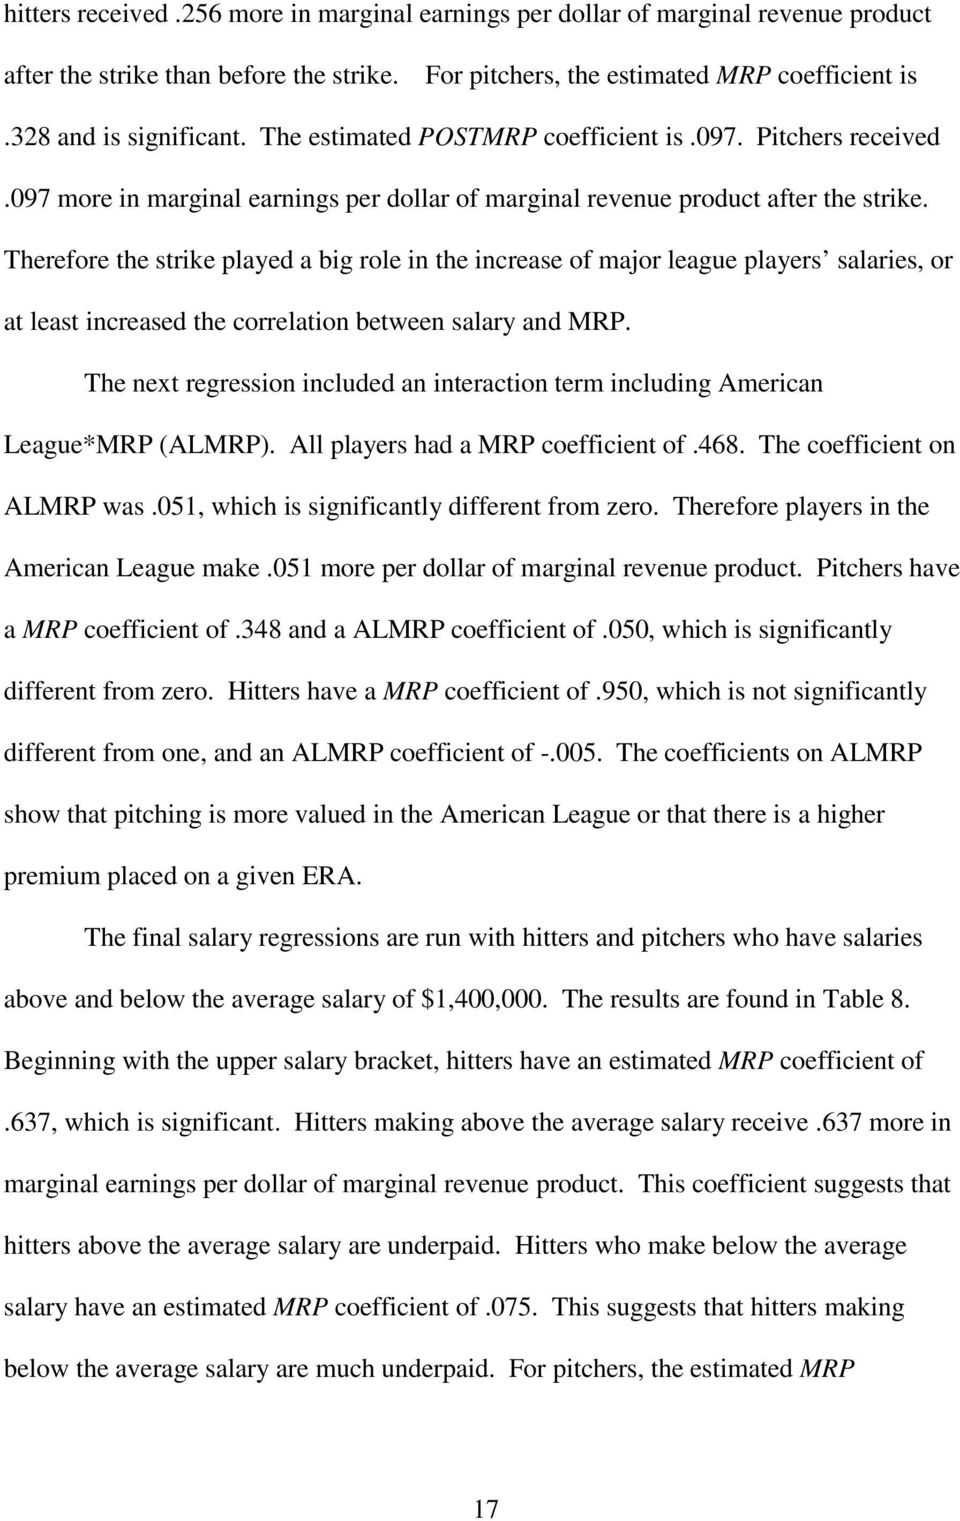 Therefore the strike played a big role in the increase of major league players salaries, or at least increased the correlation between salary and MRP.